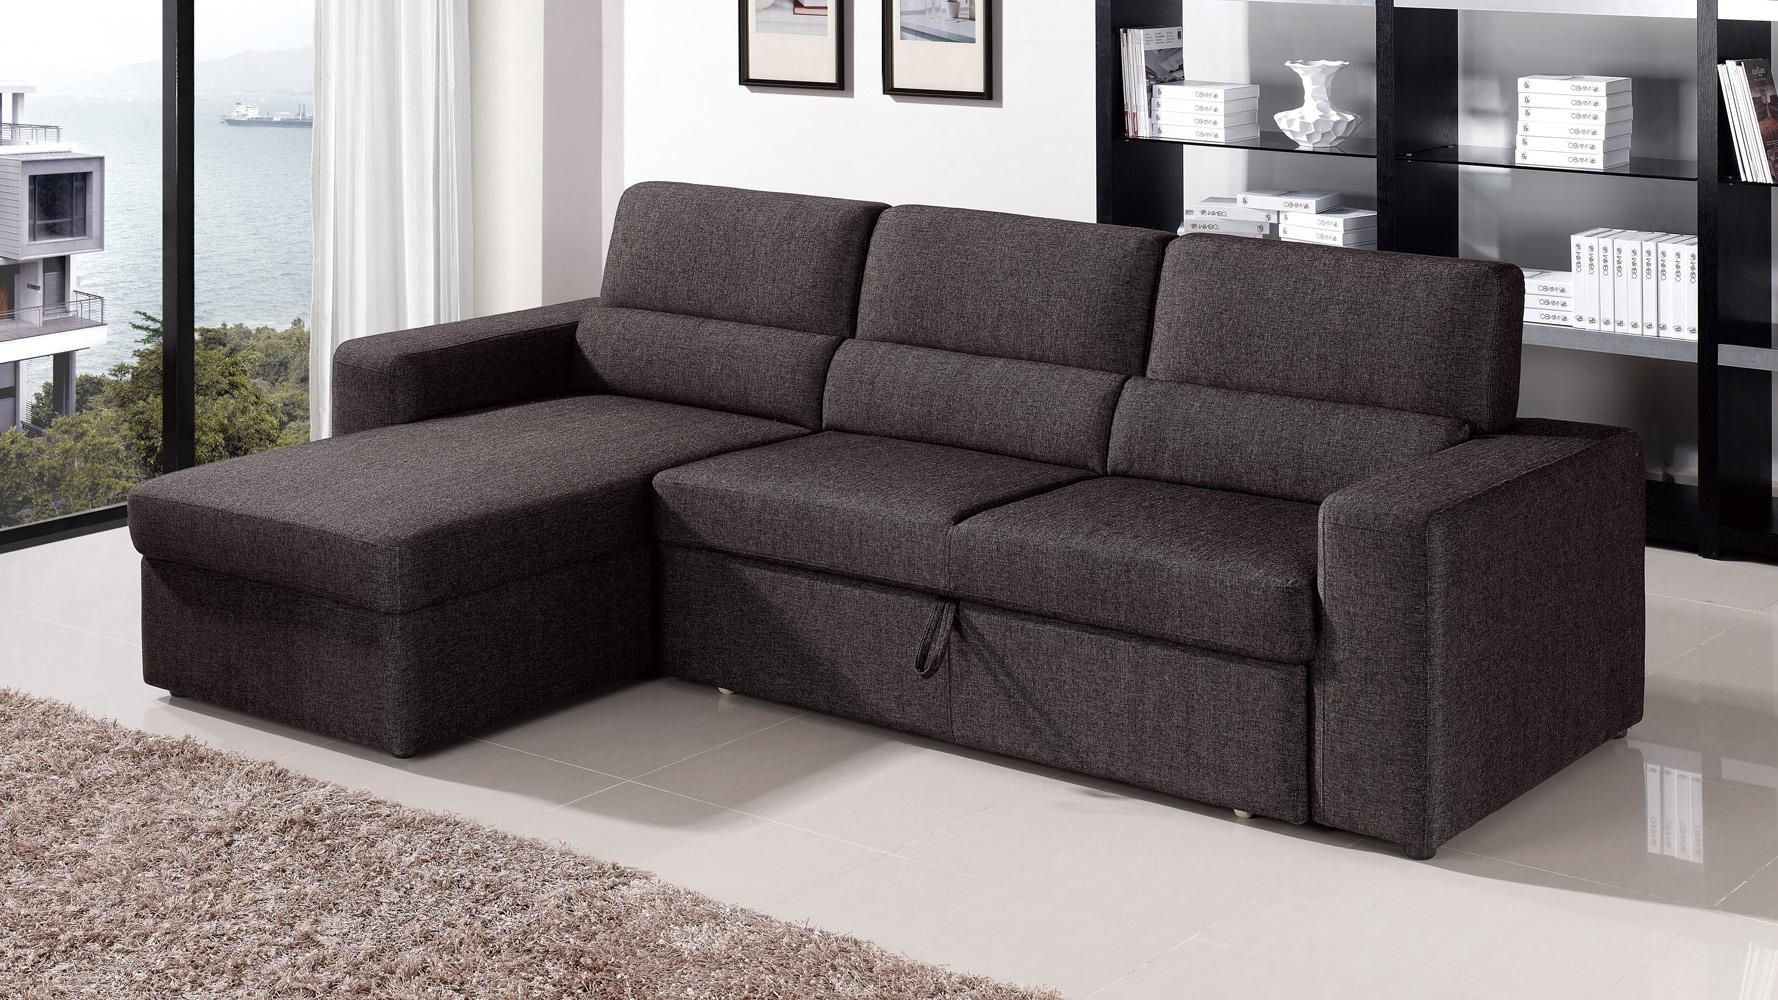 Sectional Pull Out Sleeper Sofa – Ansugallery Within Pull Out Sectional (View 4 of 20)